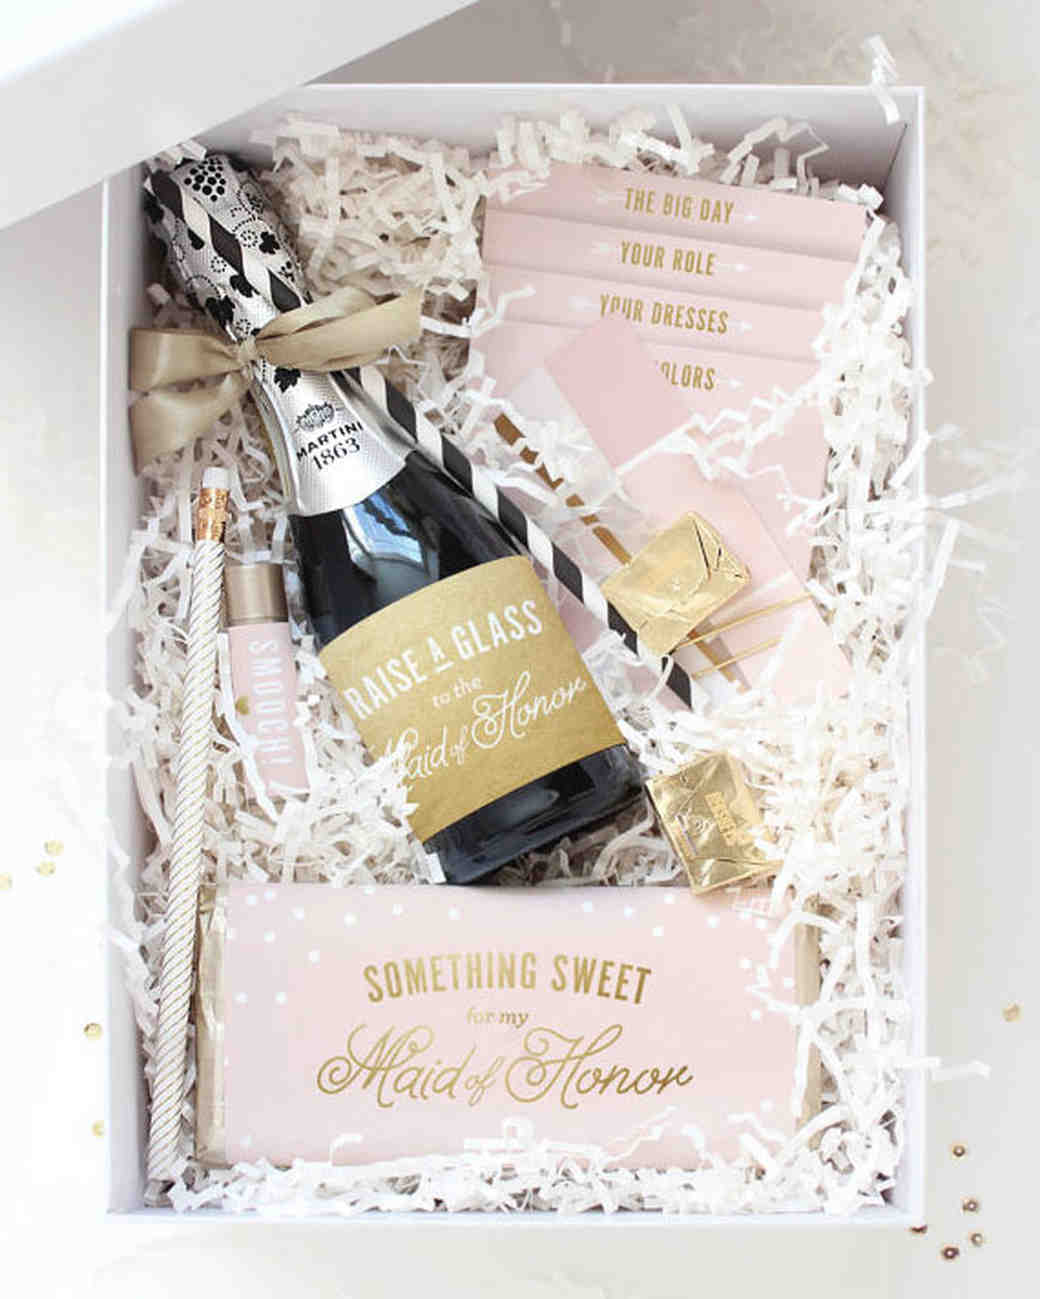 Wedding Gift Ideas For Best Friend Girl: 9 Fun Ways To Ask Your BFF To Be Your Maid Of Honor